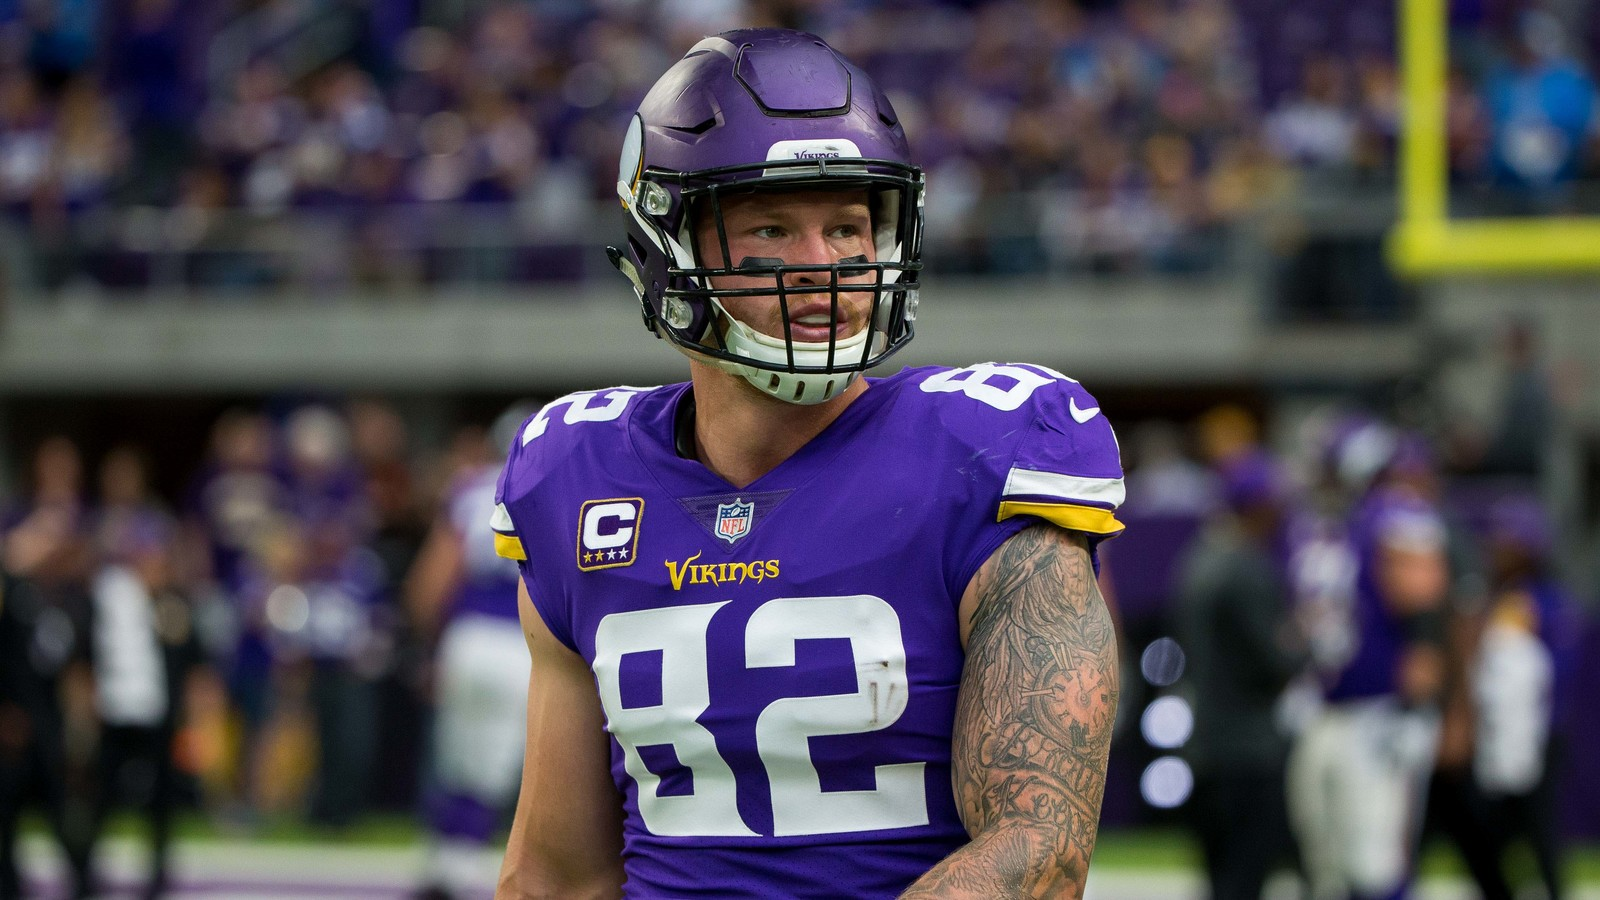 Vikings' Reiff, Rudolph listed as doubtful against Bengals